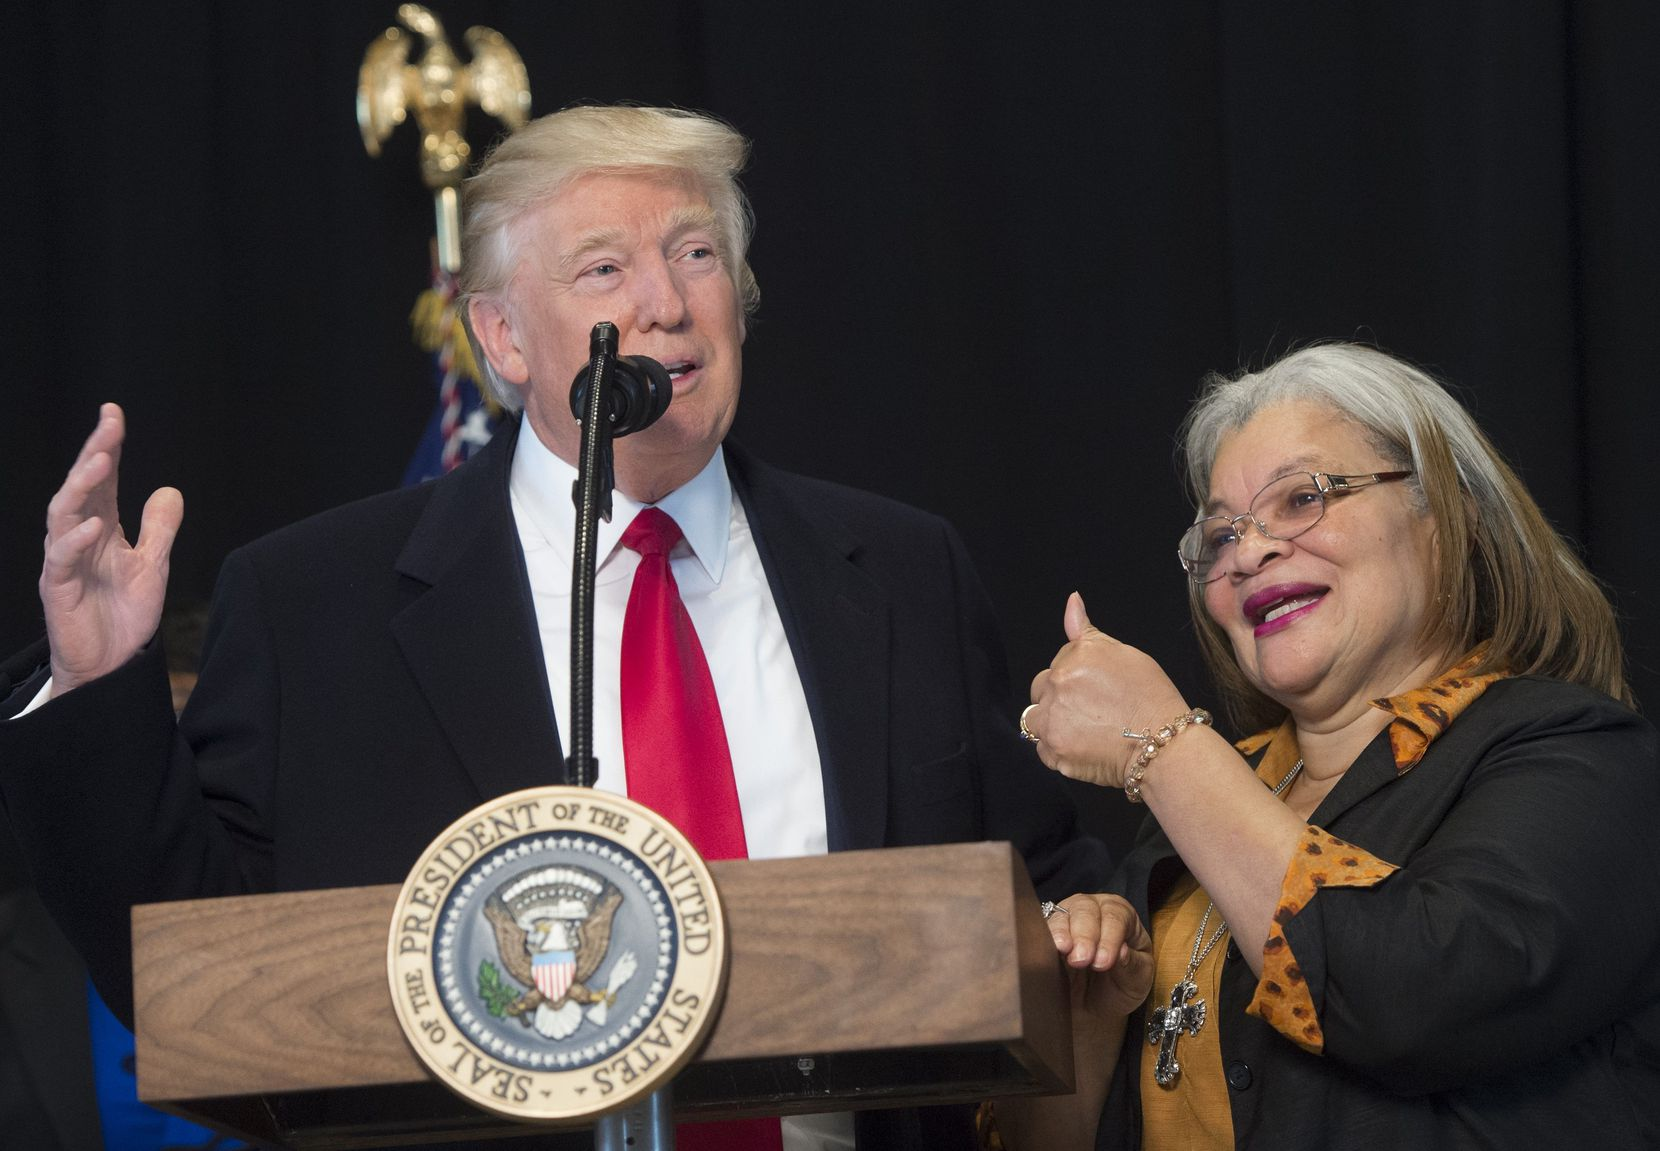 US President Donald Trump speaks as Alveda King (R), niece of civil rights icon Dr. Martin Luther King, Jr., gives a thumbs-up, following a tour of the Smithsonian National Museum of African American History and Culture in Washington, DC, February 21, 2017.